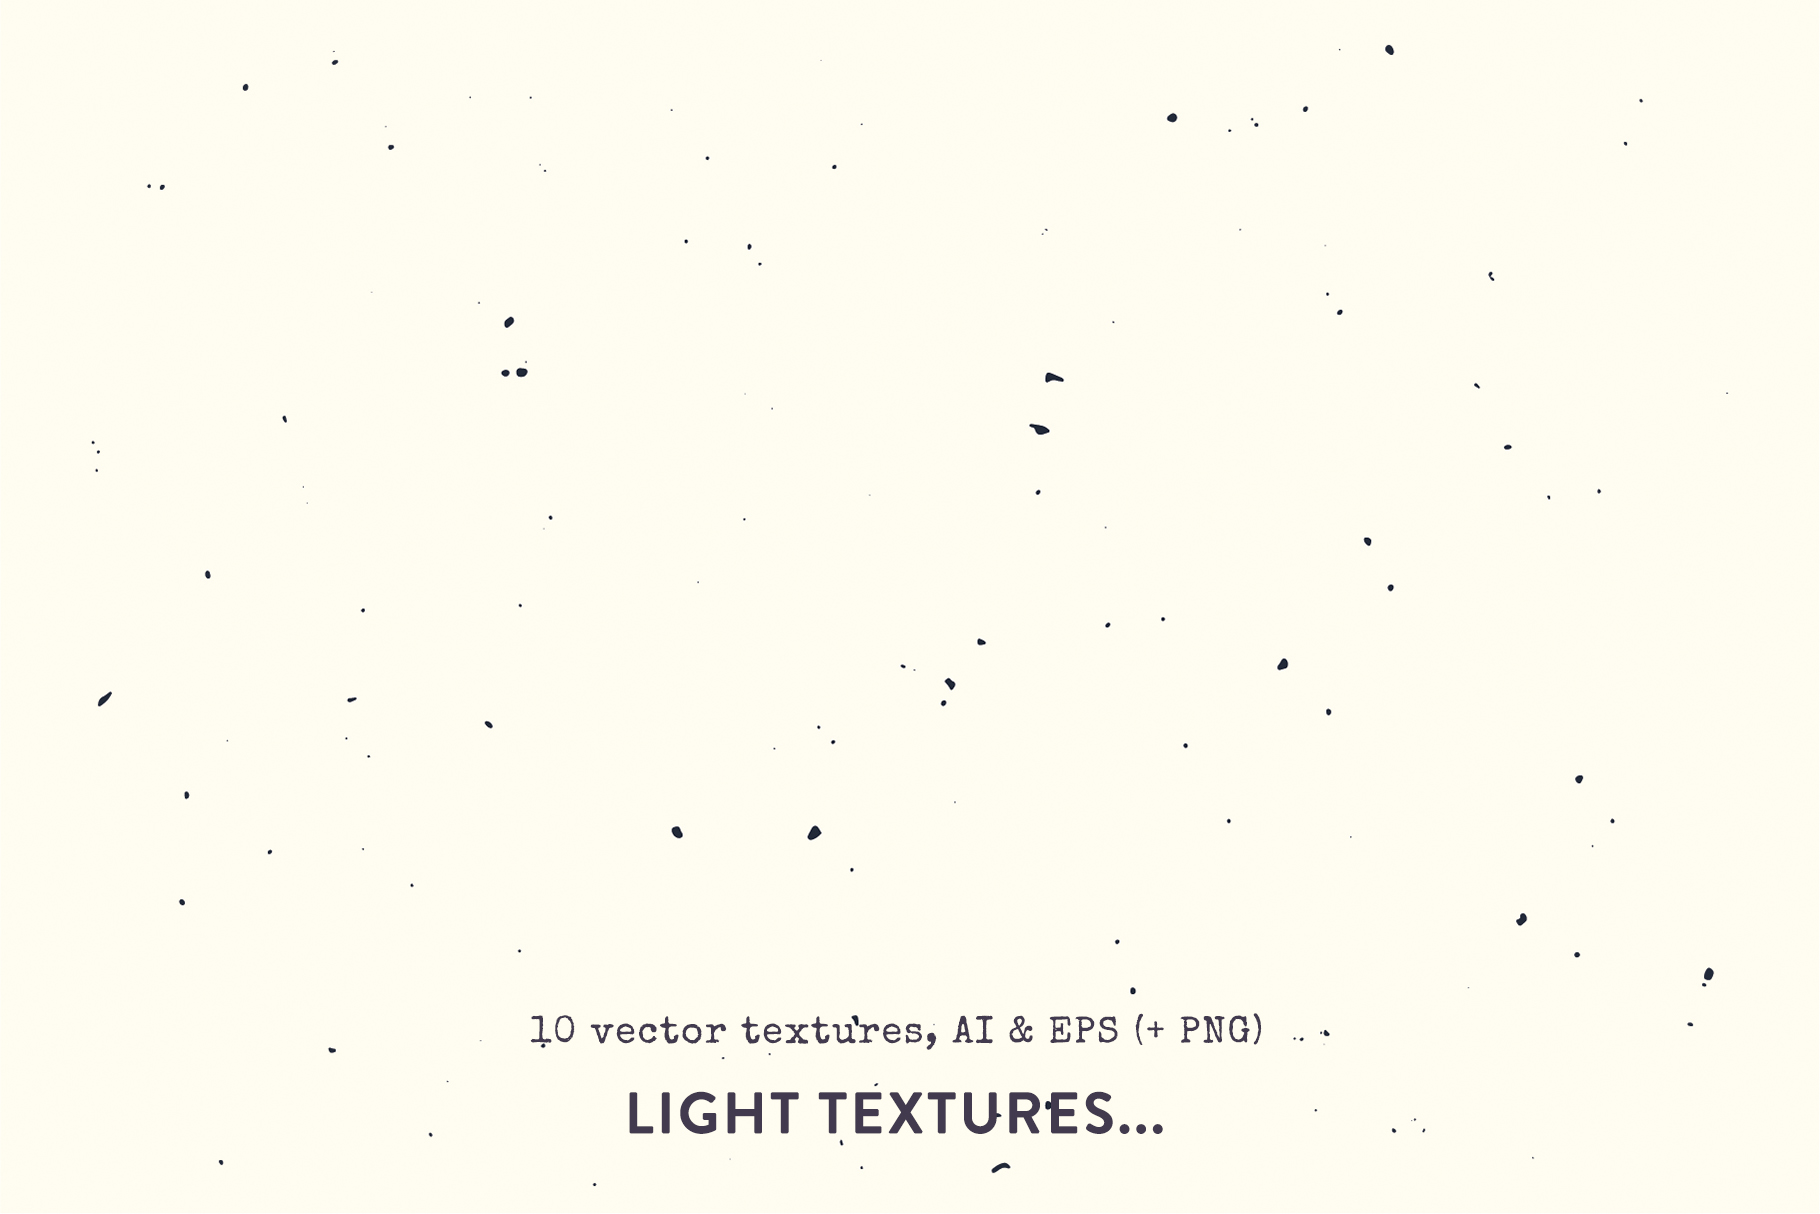 Vintage Grit Vector Textures example image 3